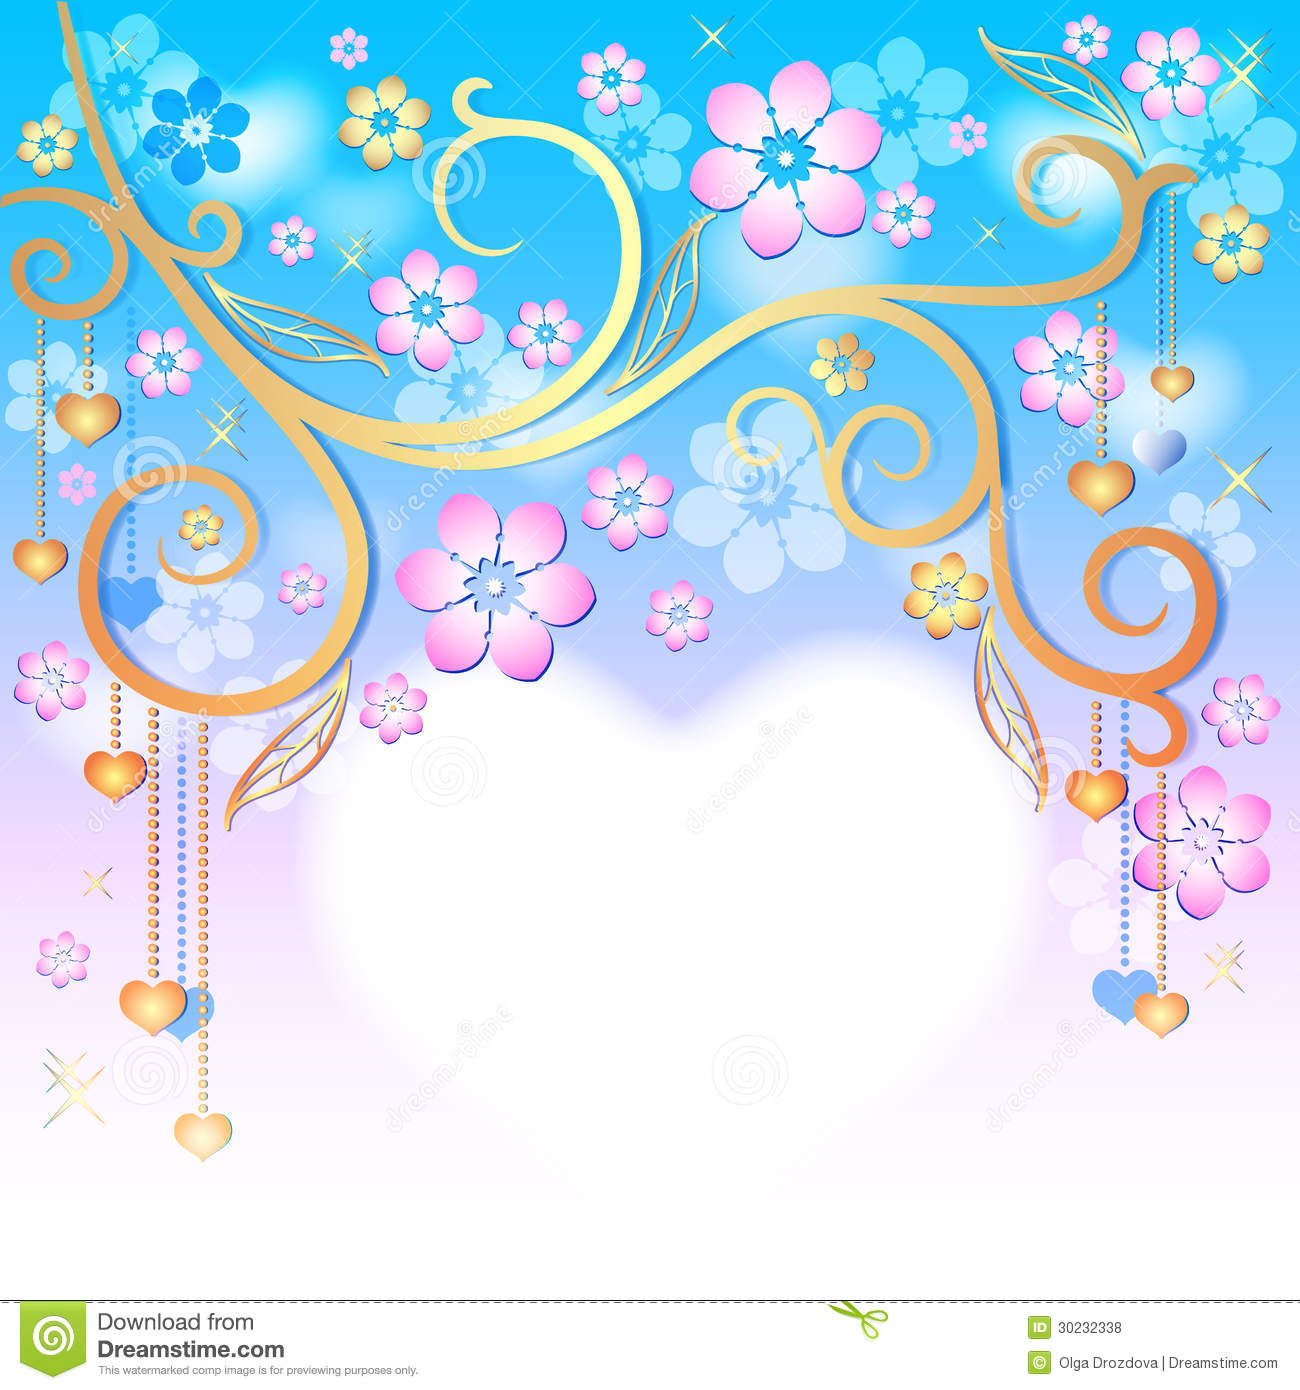 dced71b952b Spring pink easter frame stock vector. Illustration of colorful ...